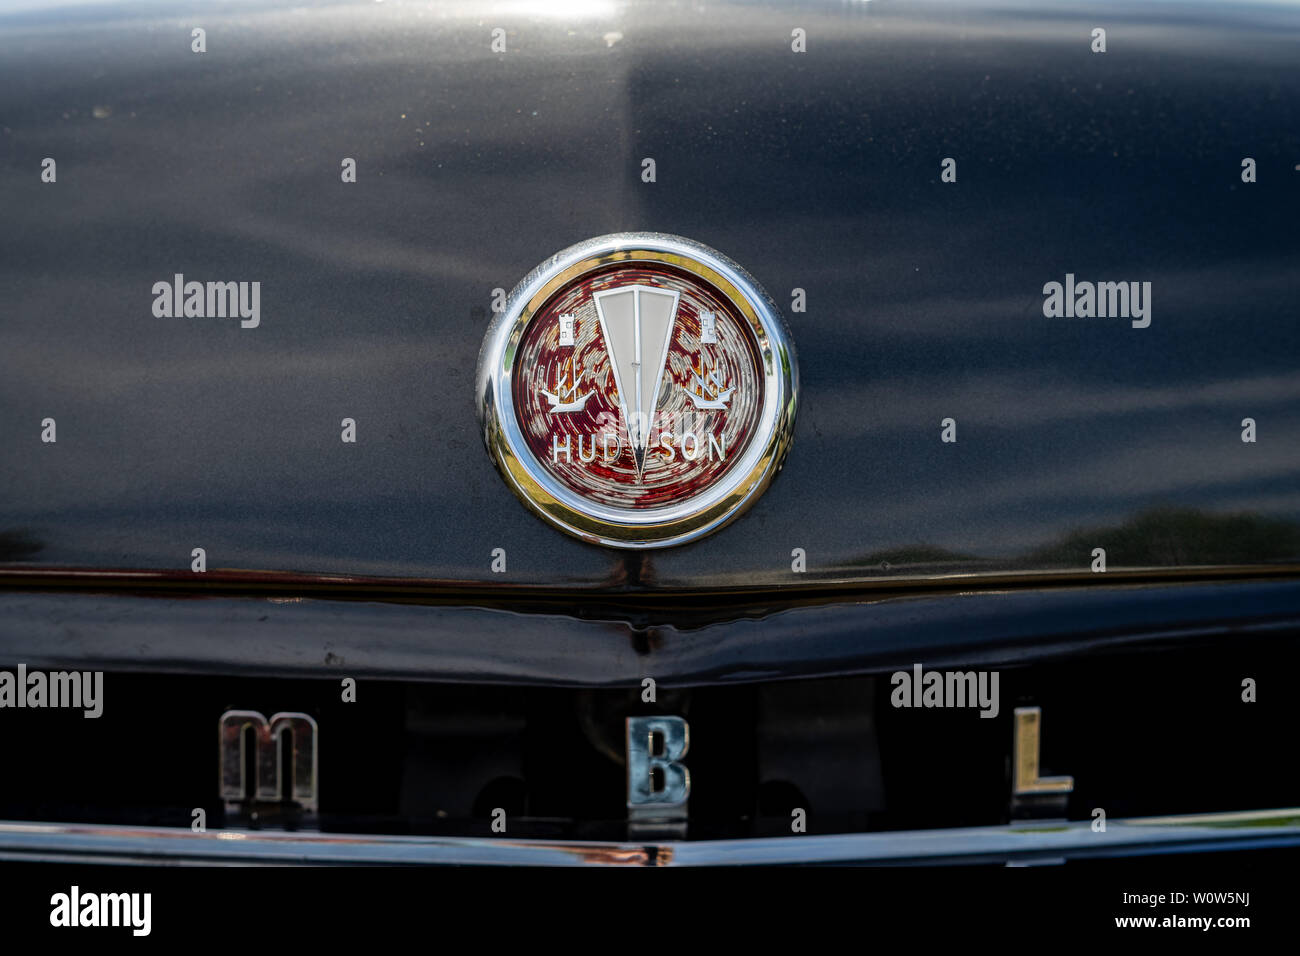 PAAREN IM GLIEN, GERMANY - MAY 19, 2018: Hood ornament of a mid-size car AMC Rambler Six, 1958. Die Oldtimer Show 2018. - Stock Image